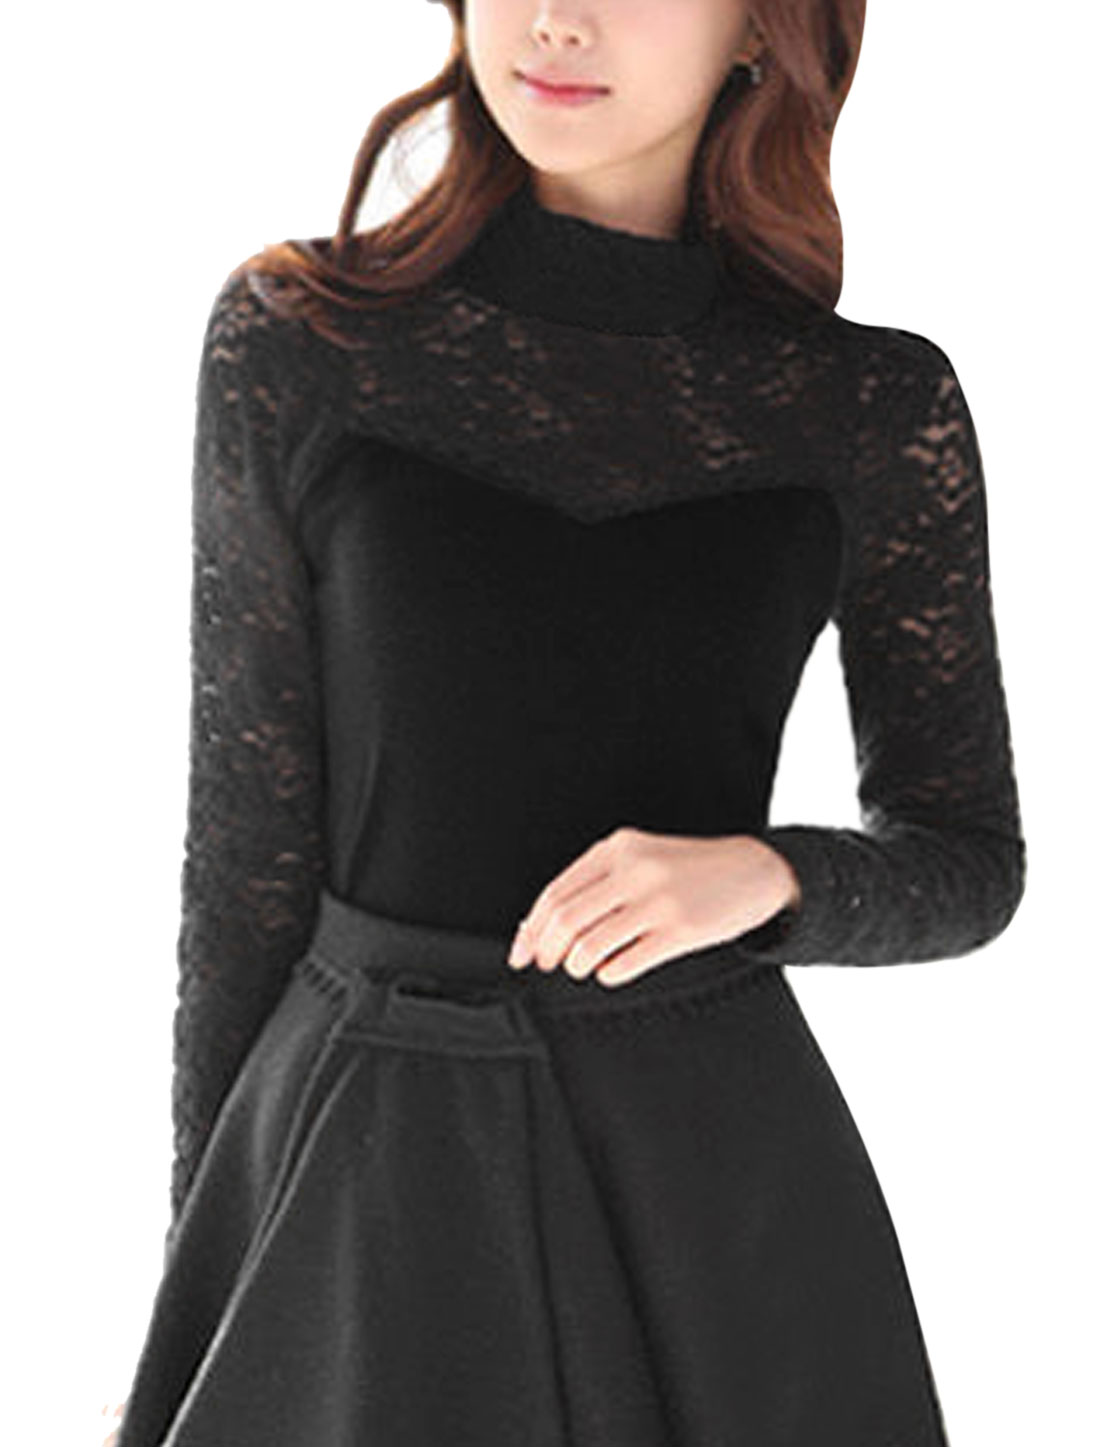 Ladies Black Cropped Sleeves Stretchy Casual Autumn Tee Shirt XS